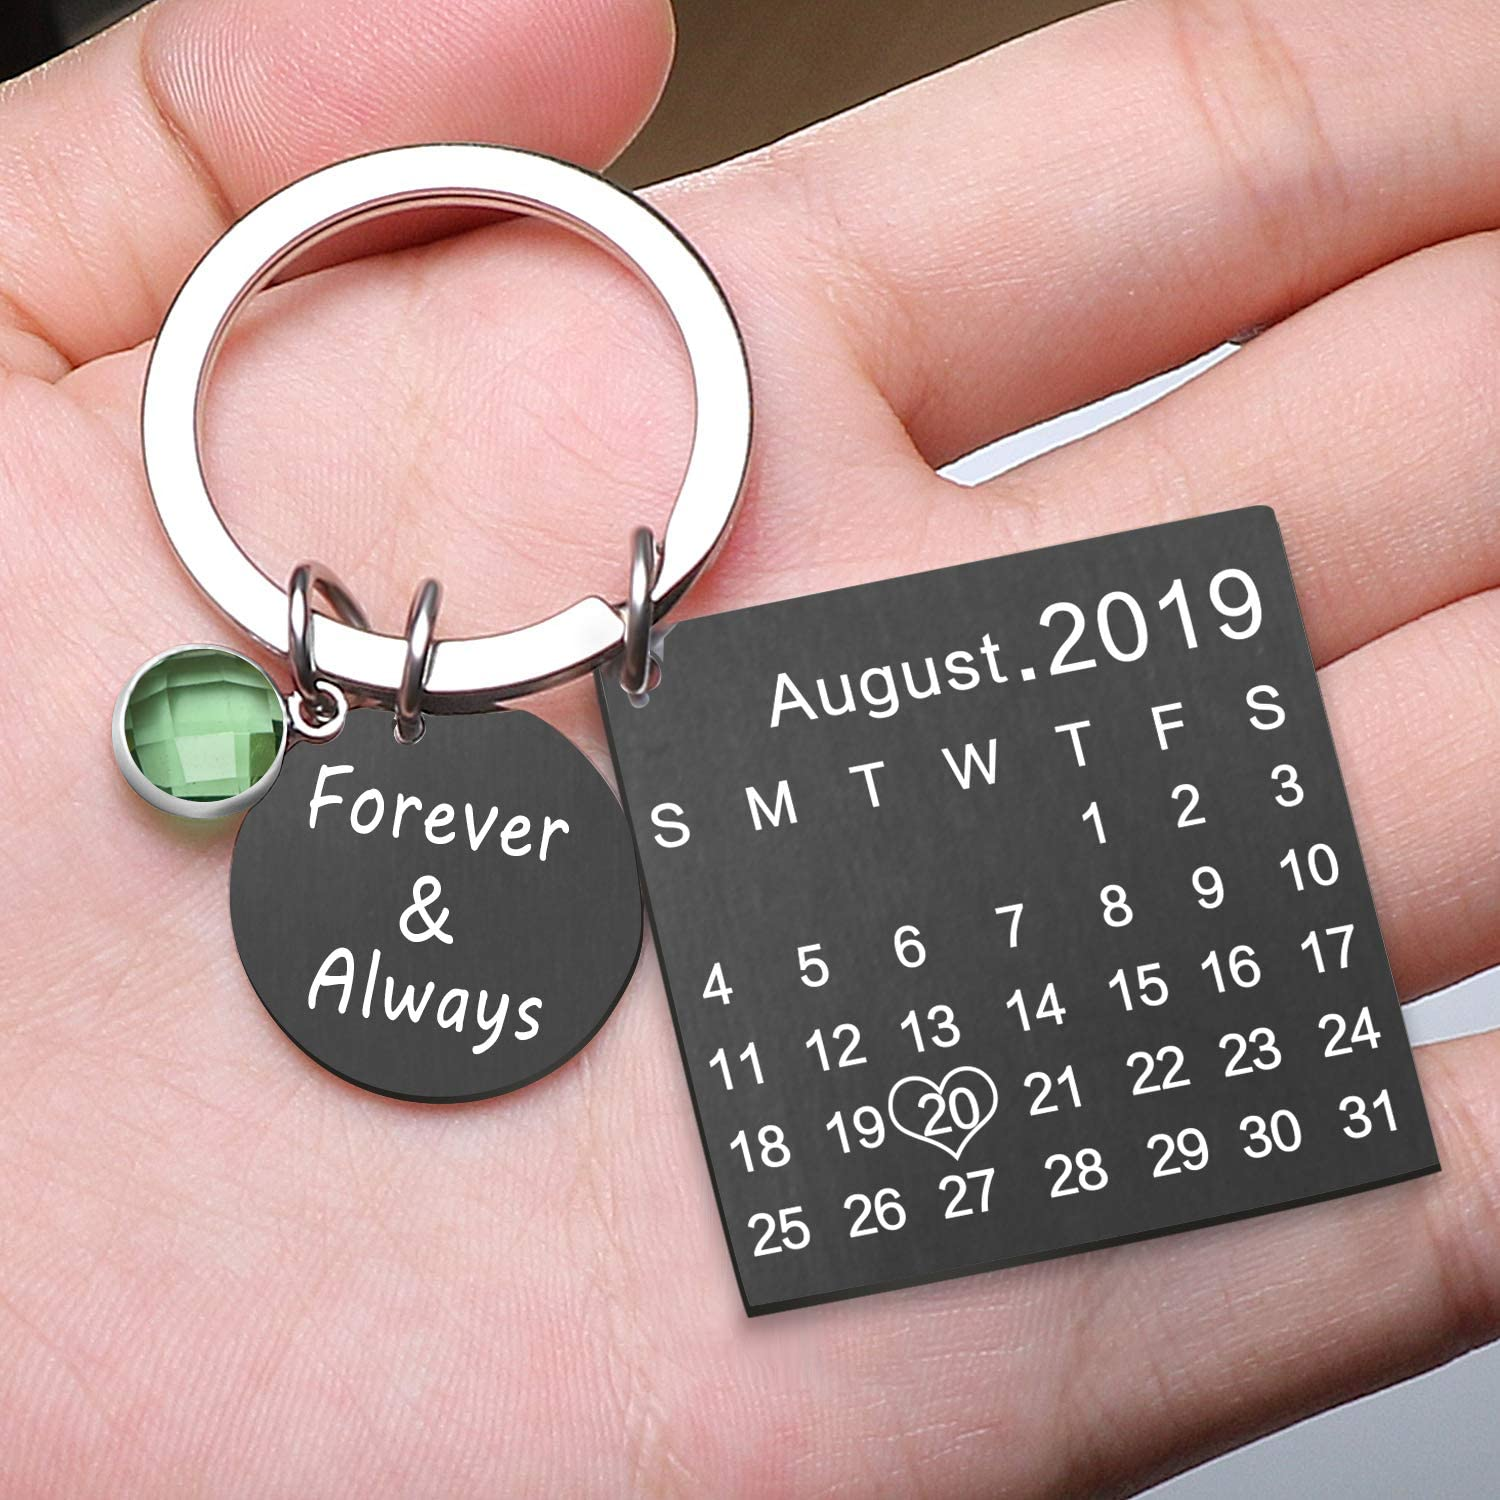 Black Engraving Custom Date Calendar Keychain Custom Date Pendant Key Ring for Lovers Couples Valentines Day Birthday Anniversary Special Day Gift